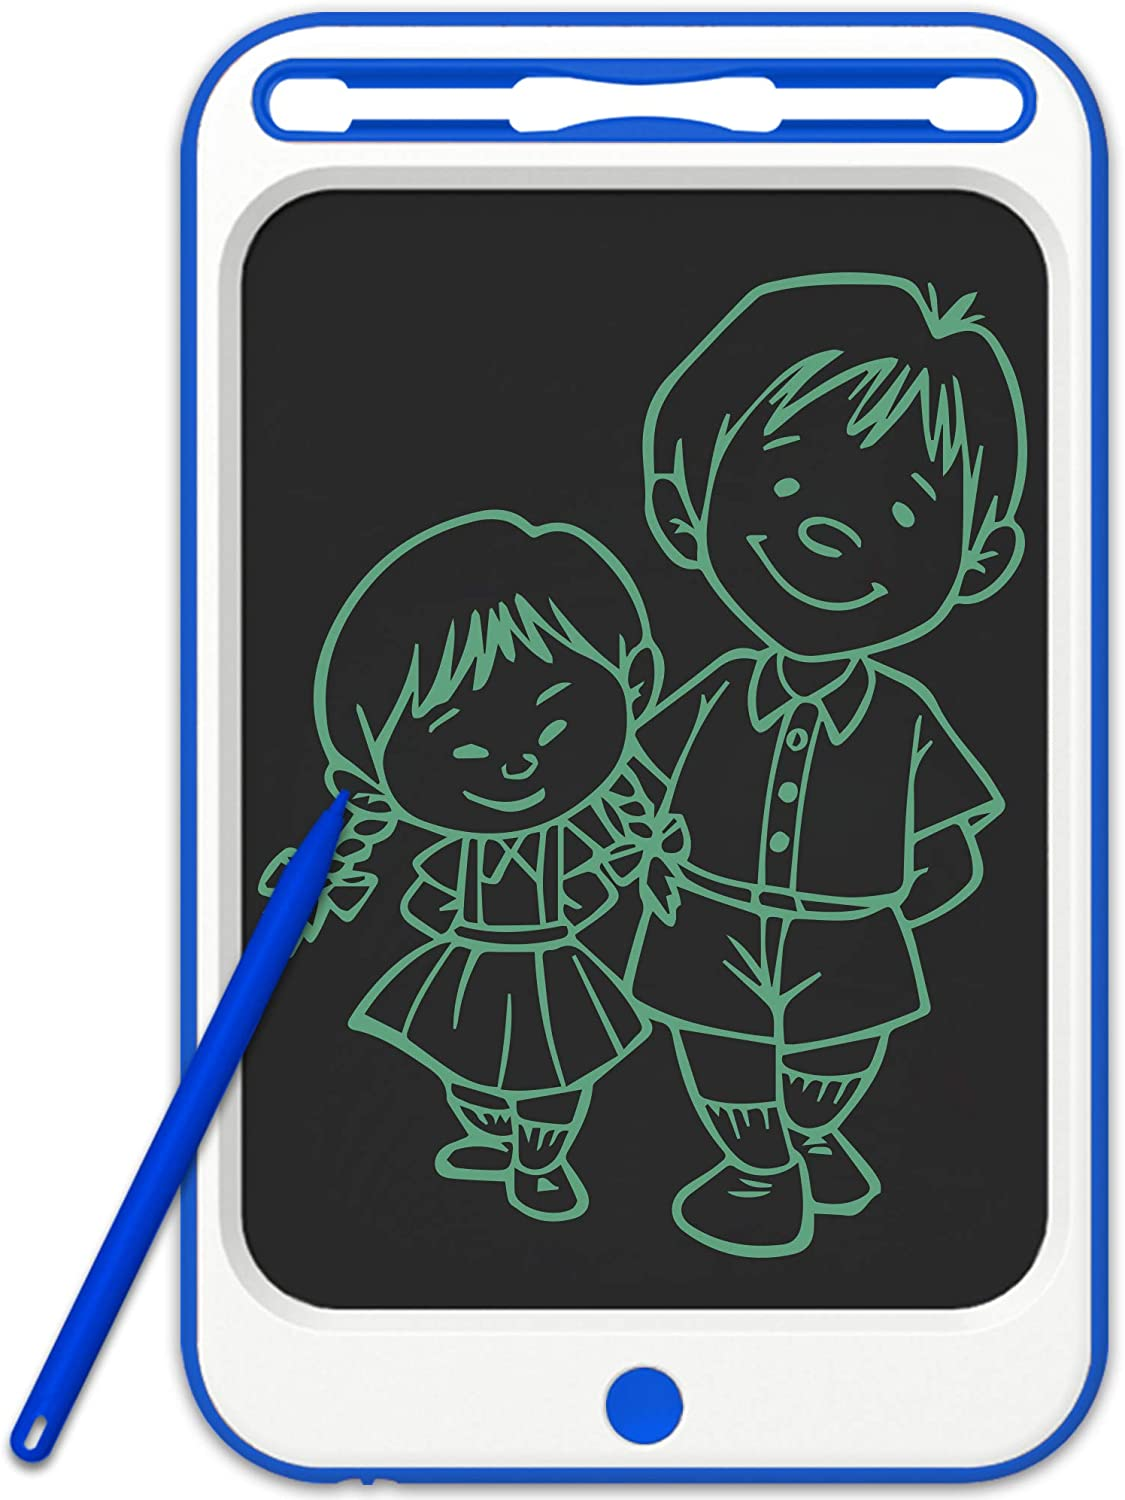 JONZOO LCD Writing Drawing Tablet 10 inch Electronic Doodle Board with Screen Lock Digital Sketch Pad Erasable Reusable eWriter Paperless Tool for Kids Adults at Home/School/Office…